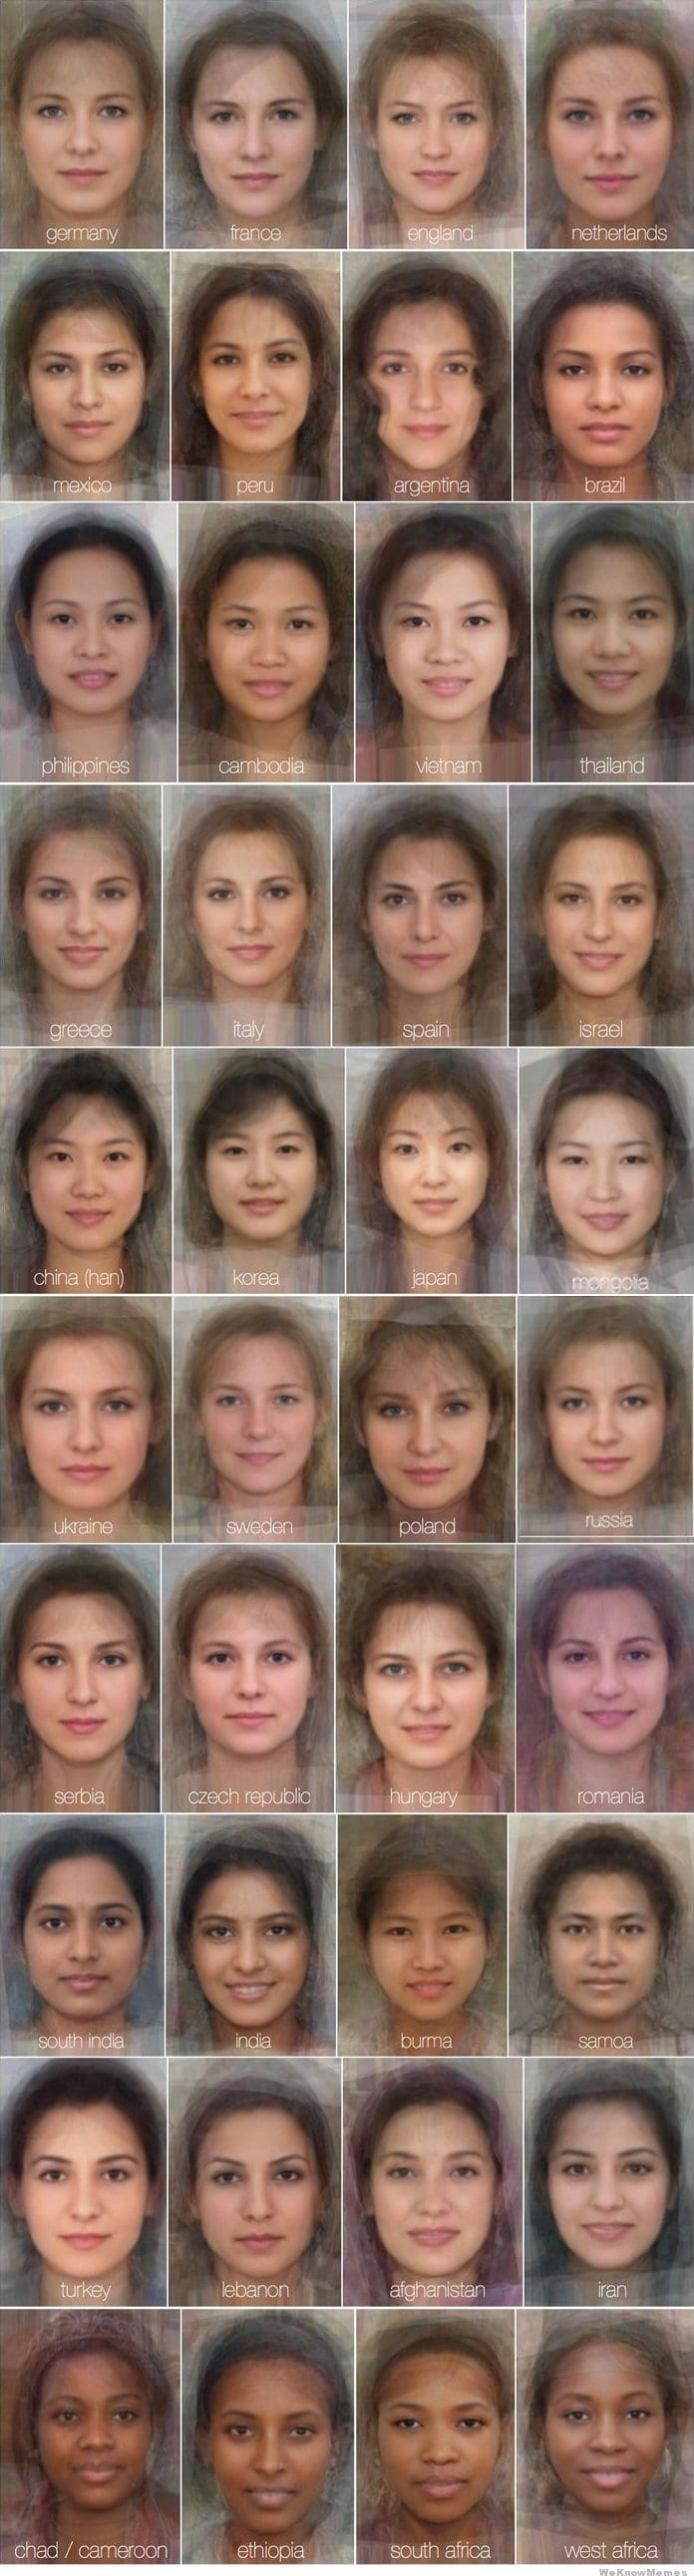 the-average-womans-face-from-40-different-countries